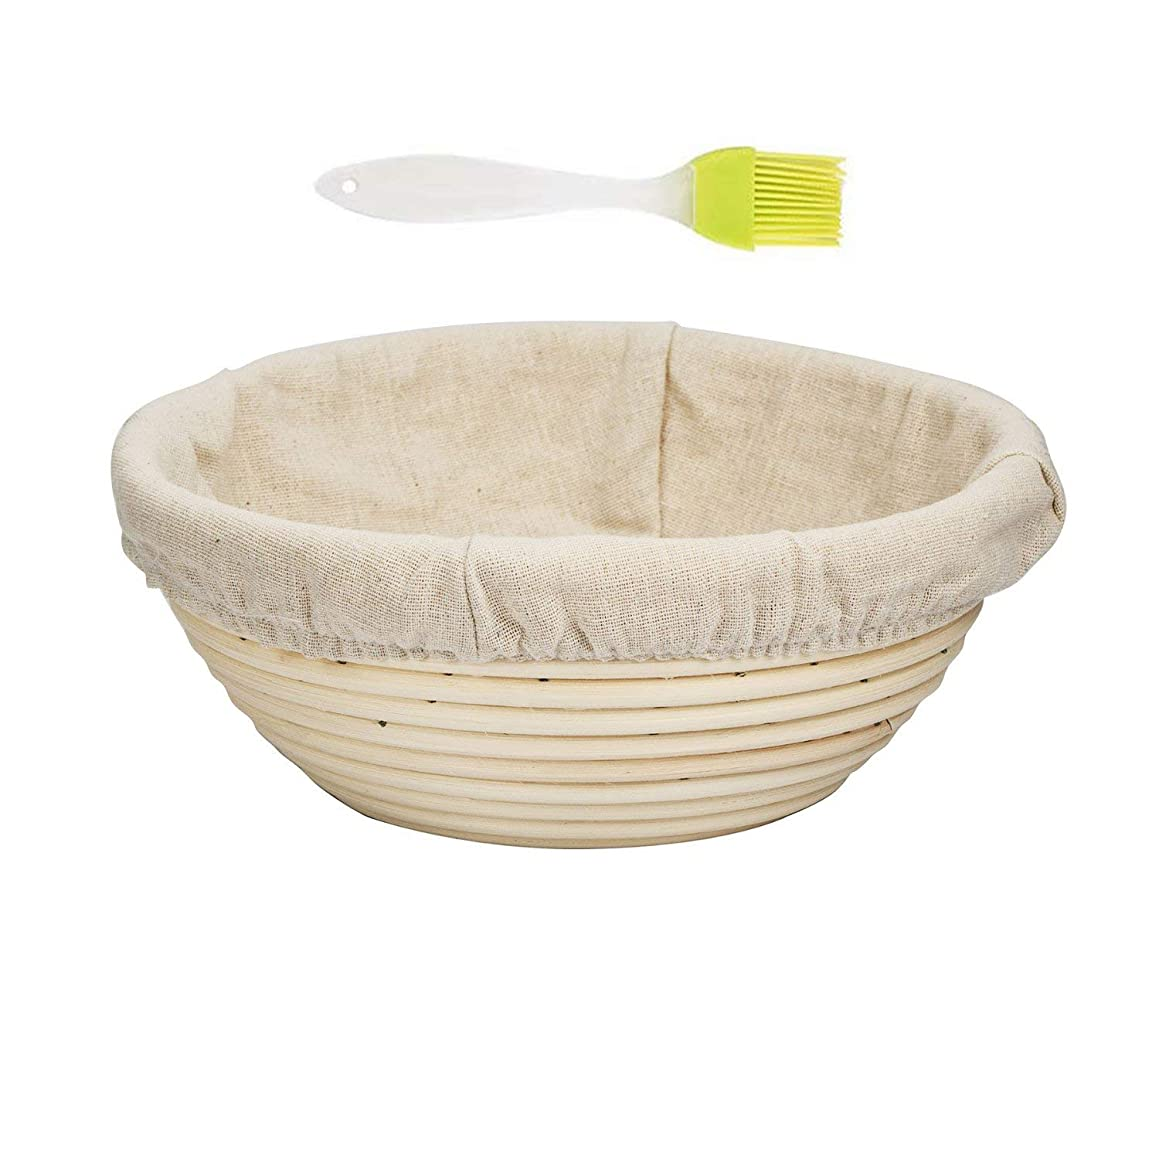 ABeauty 7'' Round Proofing Basket Banneton Proofing Basket Proofing Bowl for Bread Sourdough Dough